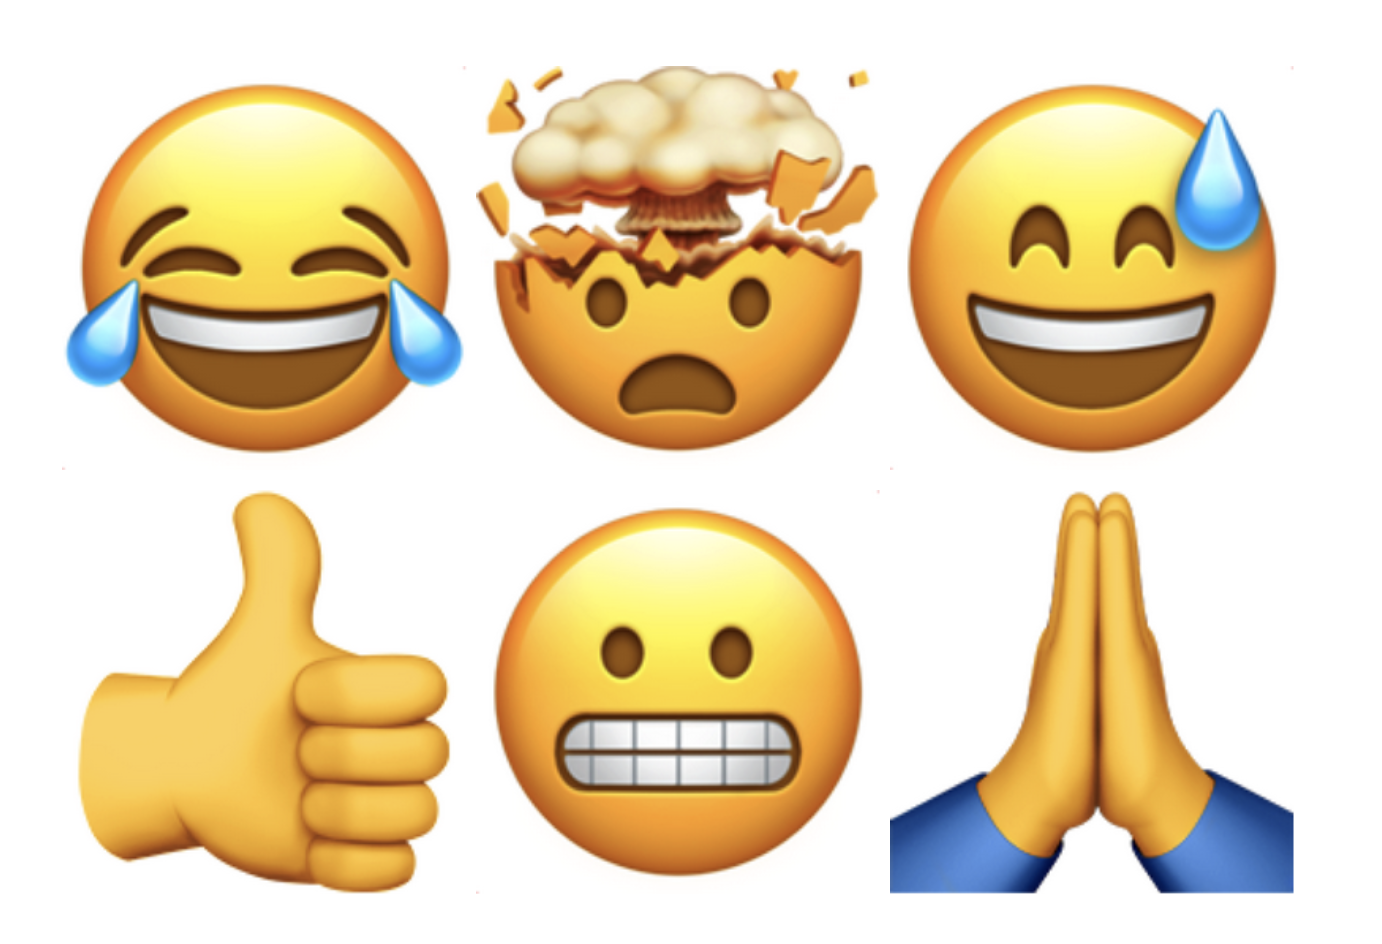 Six emojis: crying laughing, head exploding, sweat smile, thumbs up, grimace and praying hands.